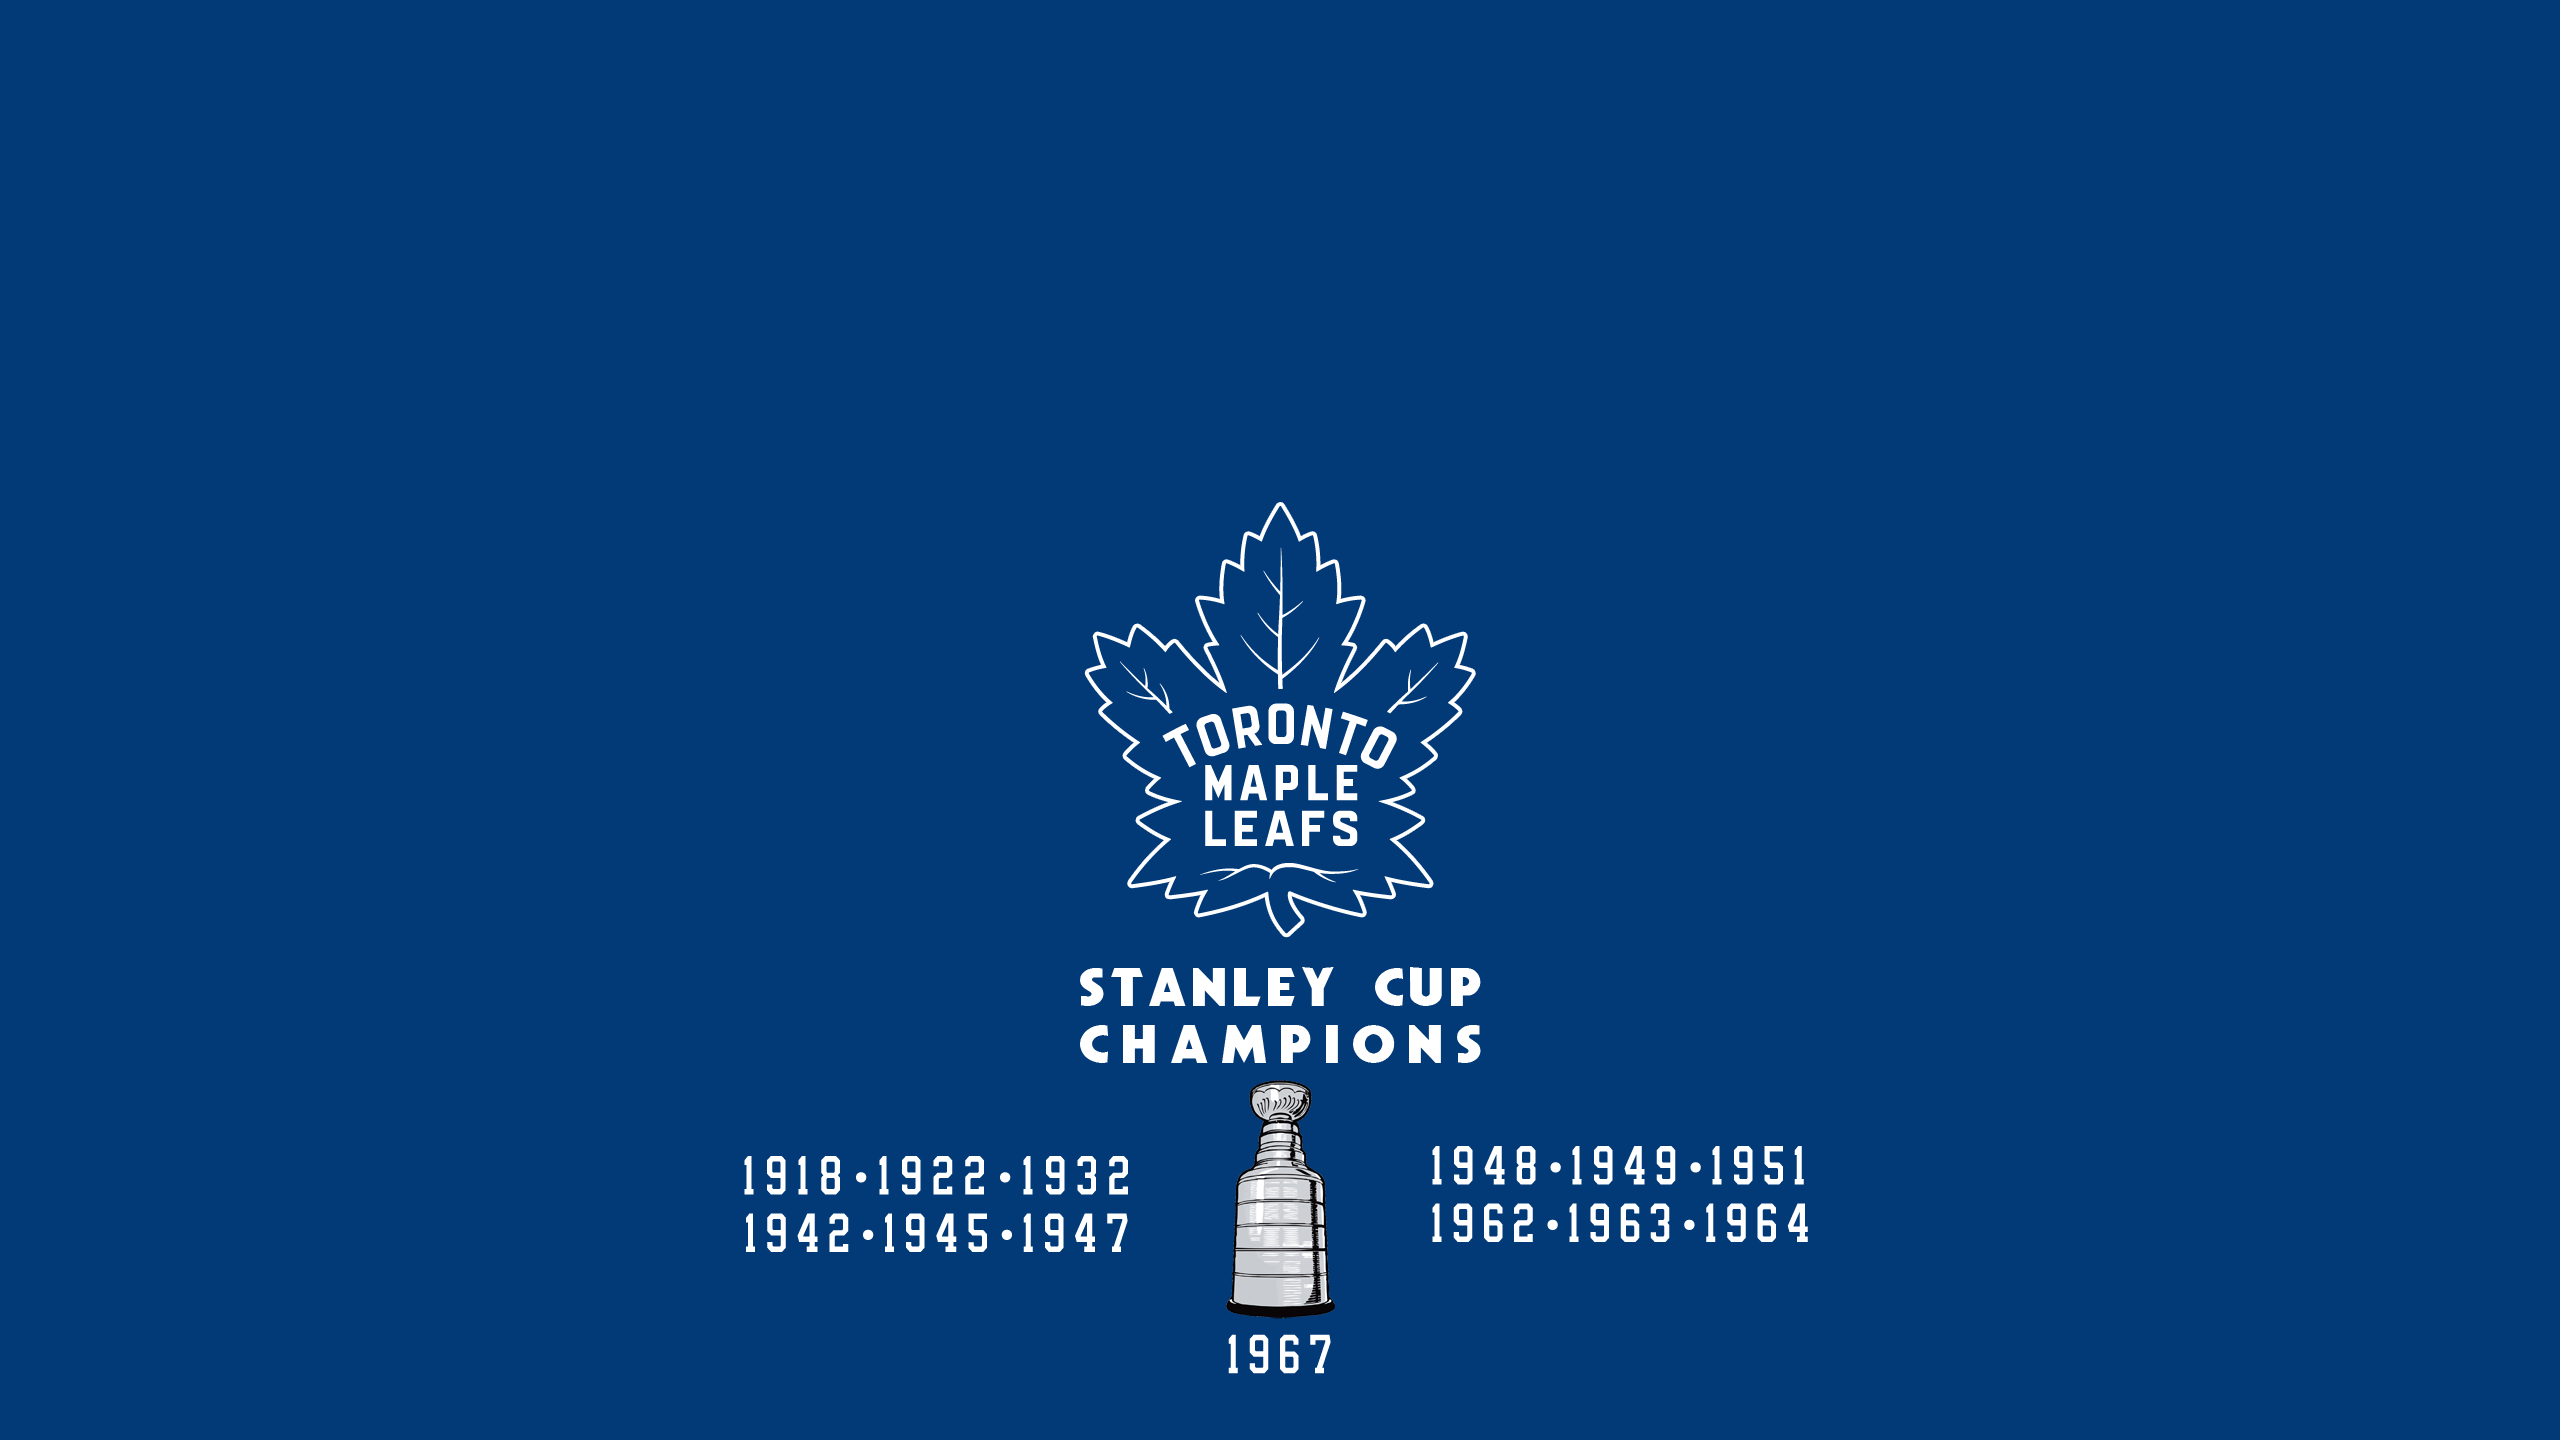 Toronto Maple Leafs - Stanley Cup